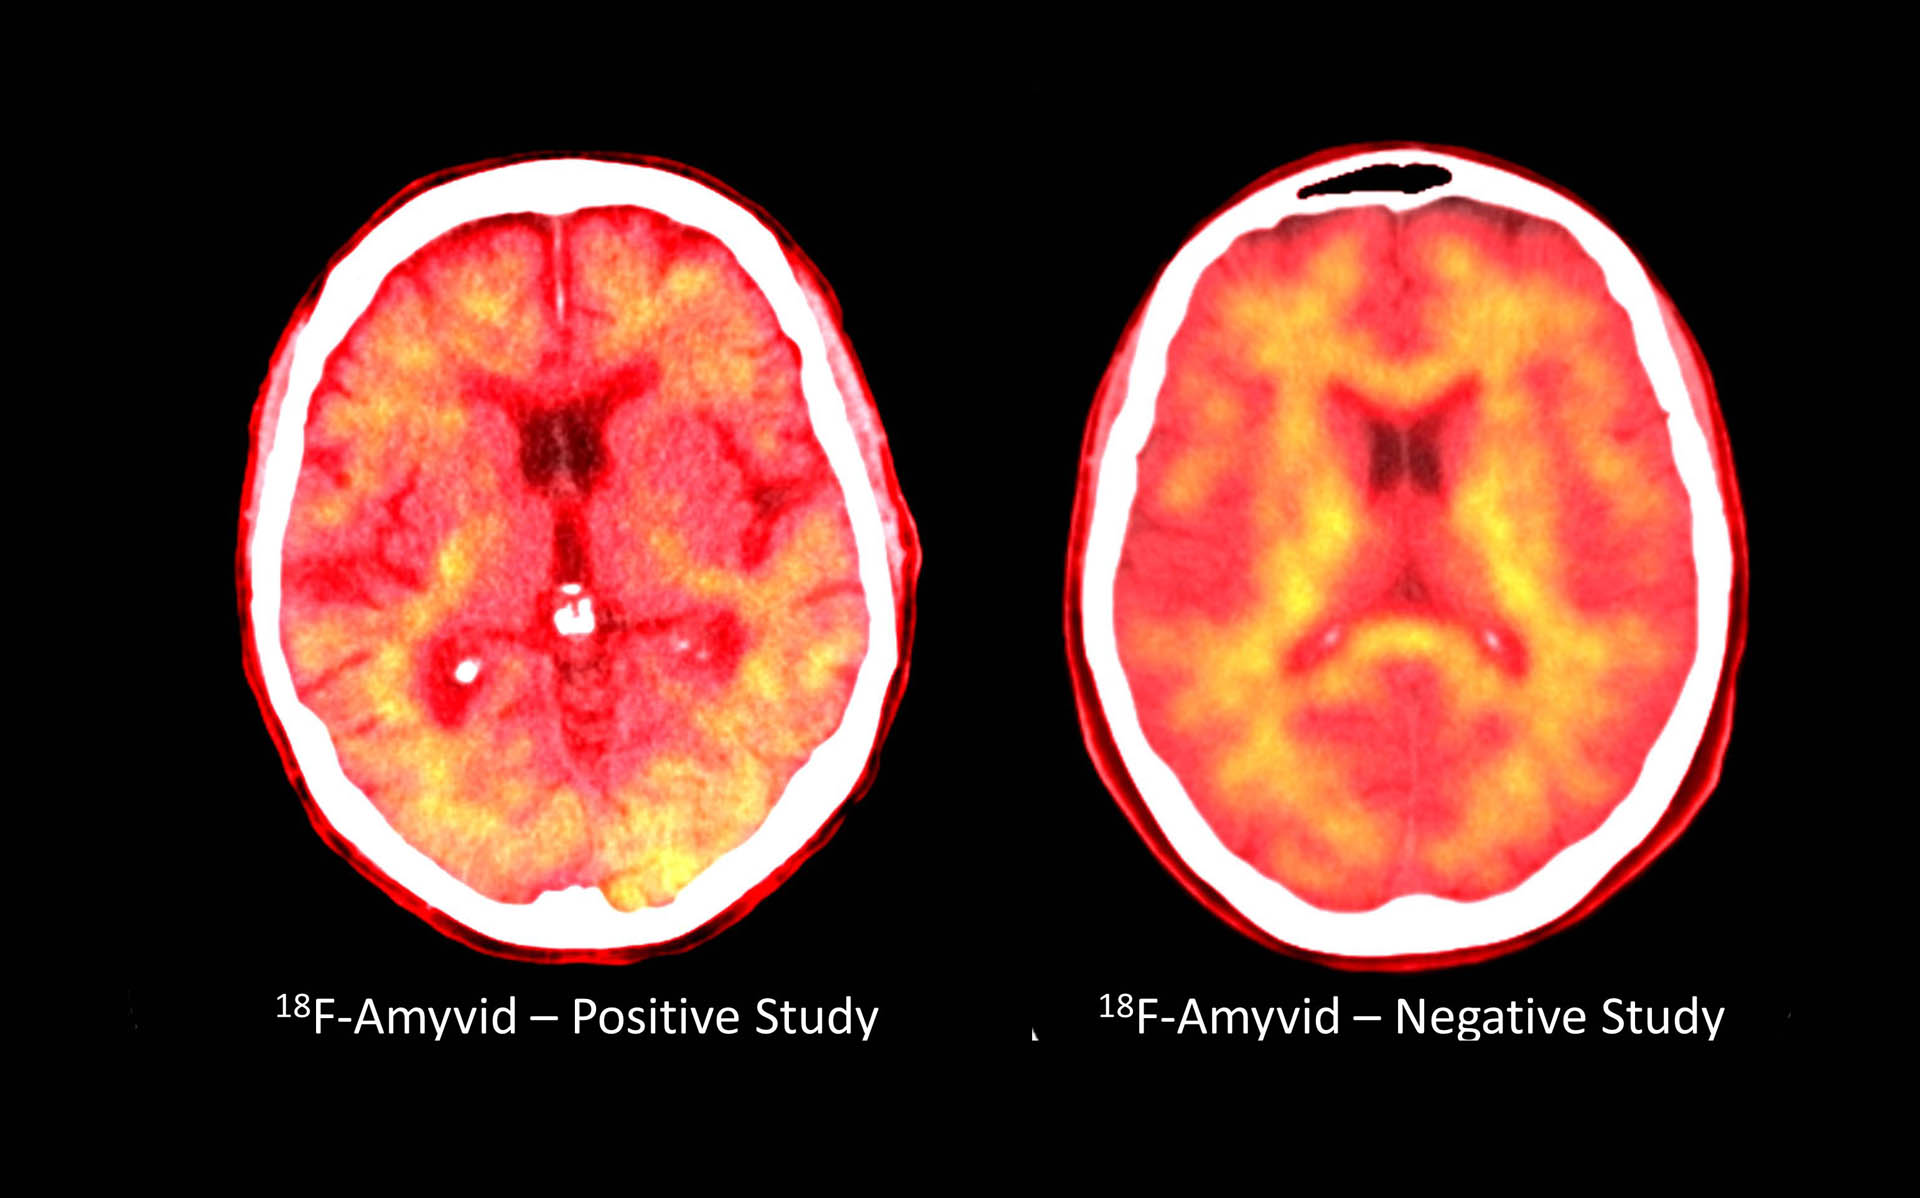 PET Imaging at Center for Imaging Research